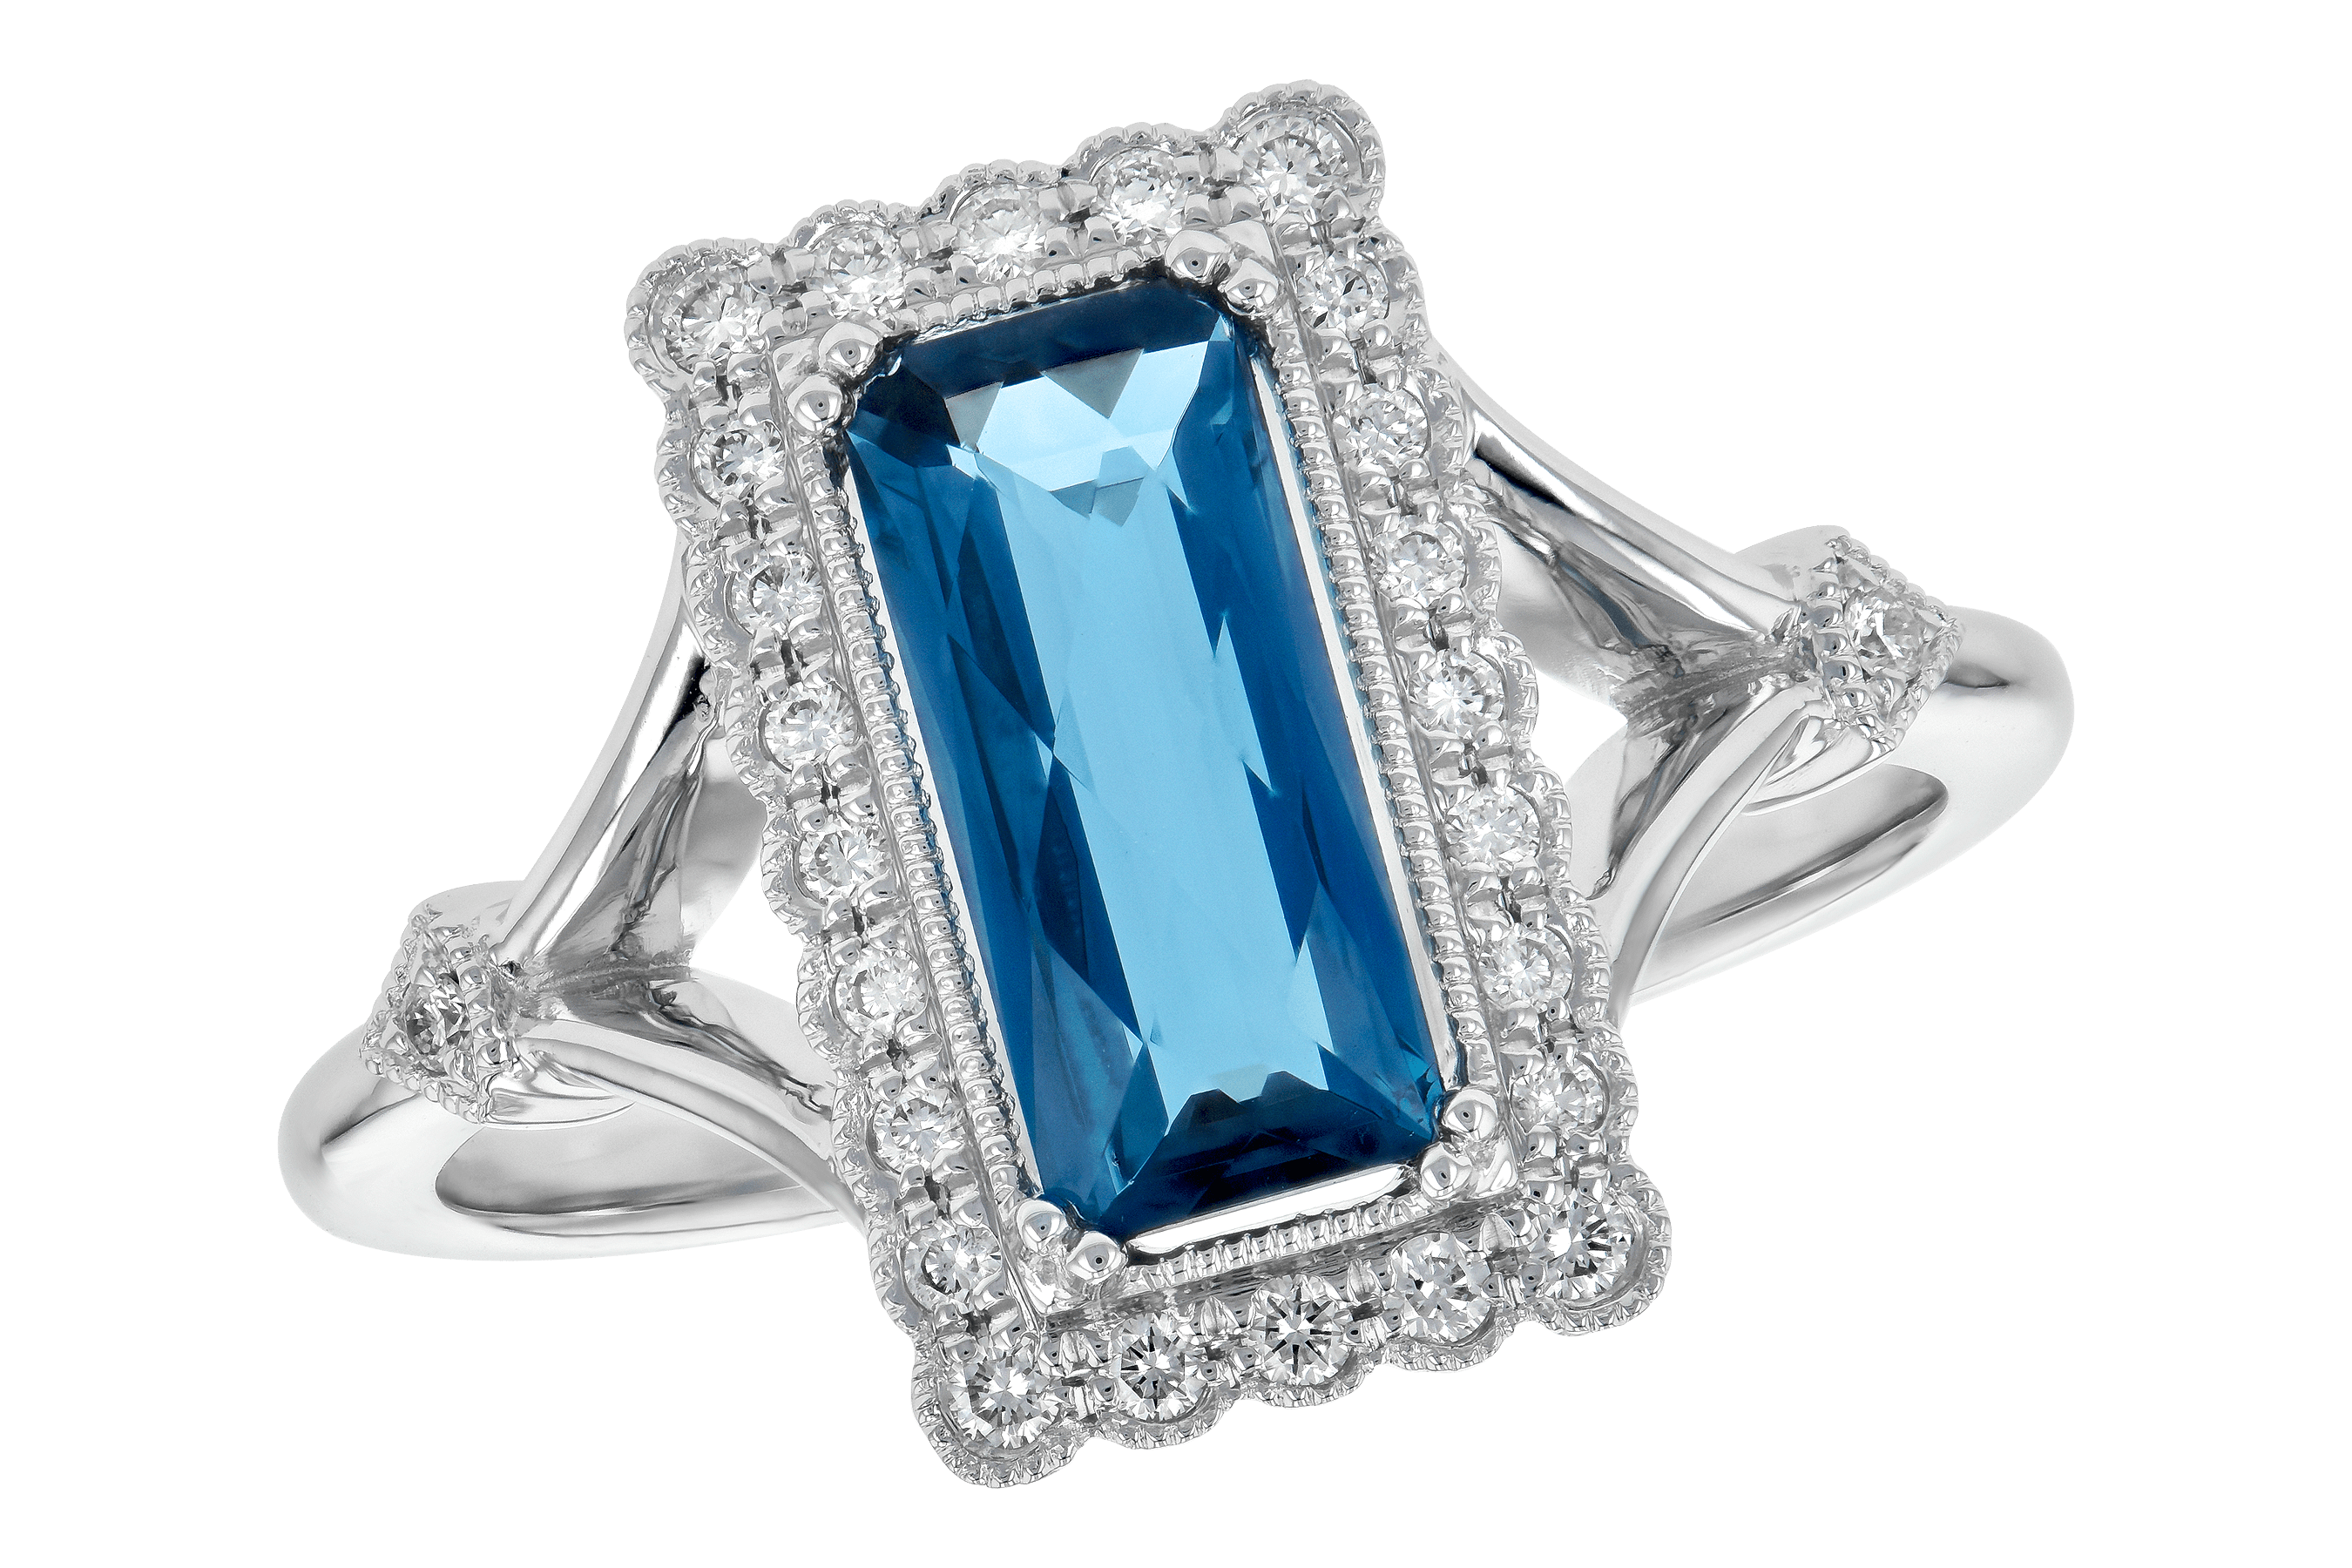 E190-15258: LDS RG 1.58 LONDON BLUE TOPAZ 1.75 TGW